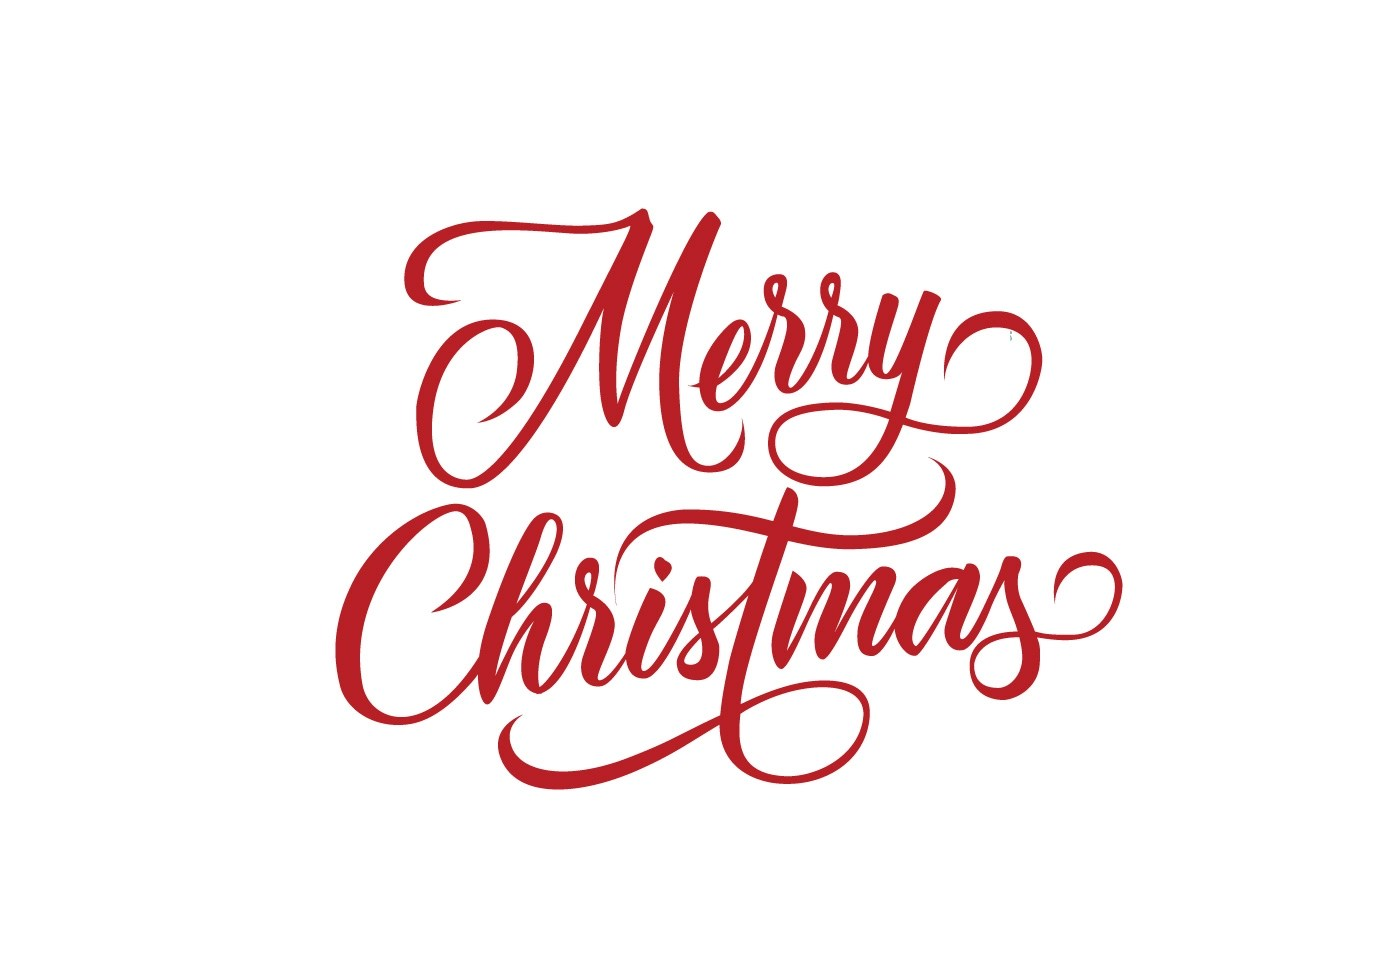 Merry Christmas Decorative Lettering Vector Download